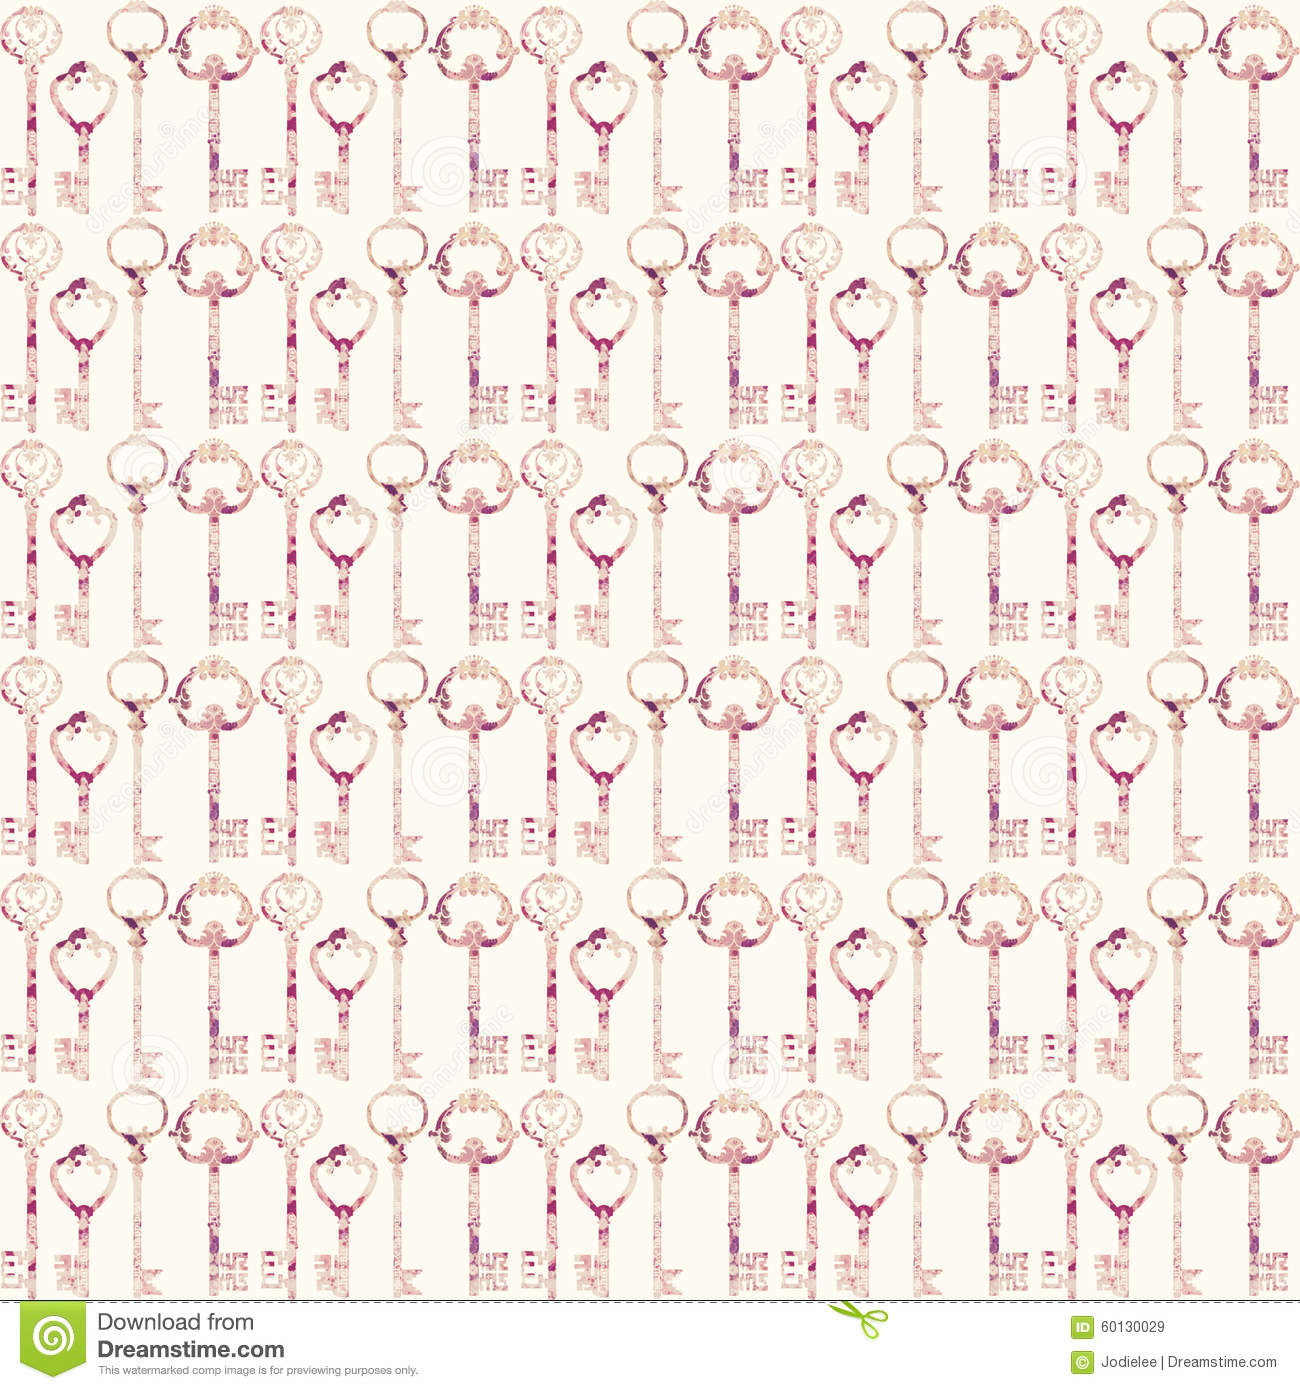 Vintage Antique pink key Seamless repeat pattern